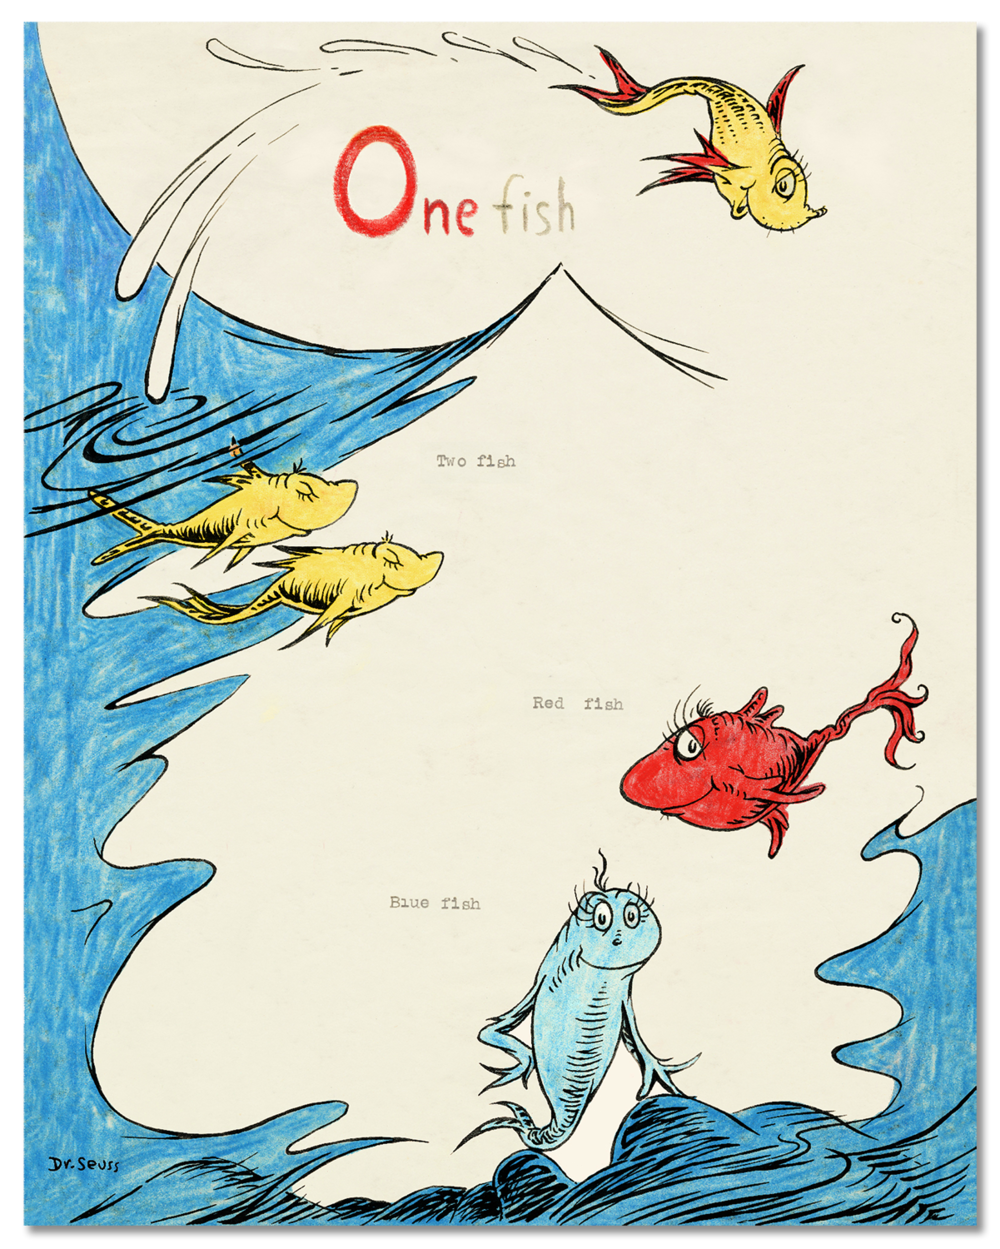 One Fish Two Fish Red Fish Blue Fish 60th Anniversary Pigment Print on Acid-Free Paper Image Dimensions: 29 inches x 23.125 inches Limited Edition of 395 Arabic Numbers, 99 Patrons' Collection prints, 155 Collaborators' Proofs, 5 Hors d'Commerce, 2 Printer's Proofs, 60 Special Reserve